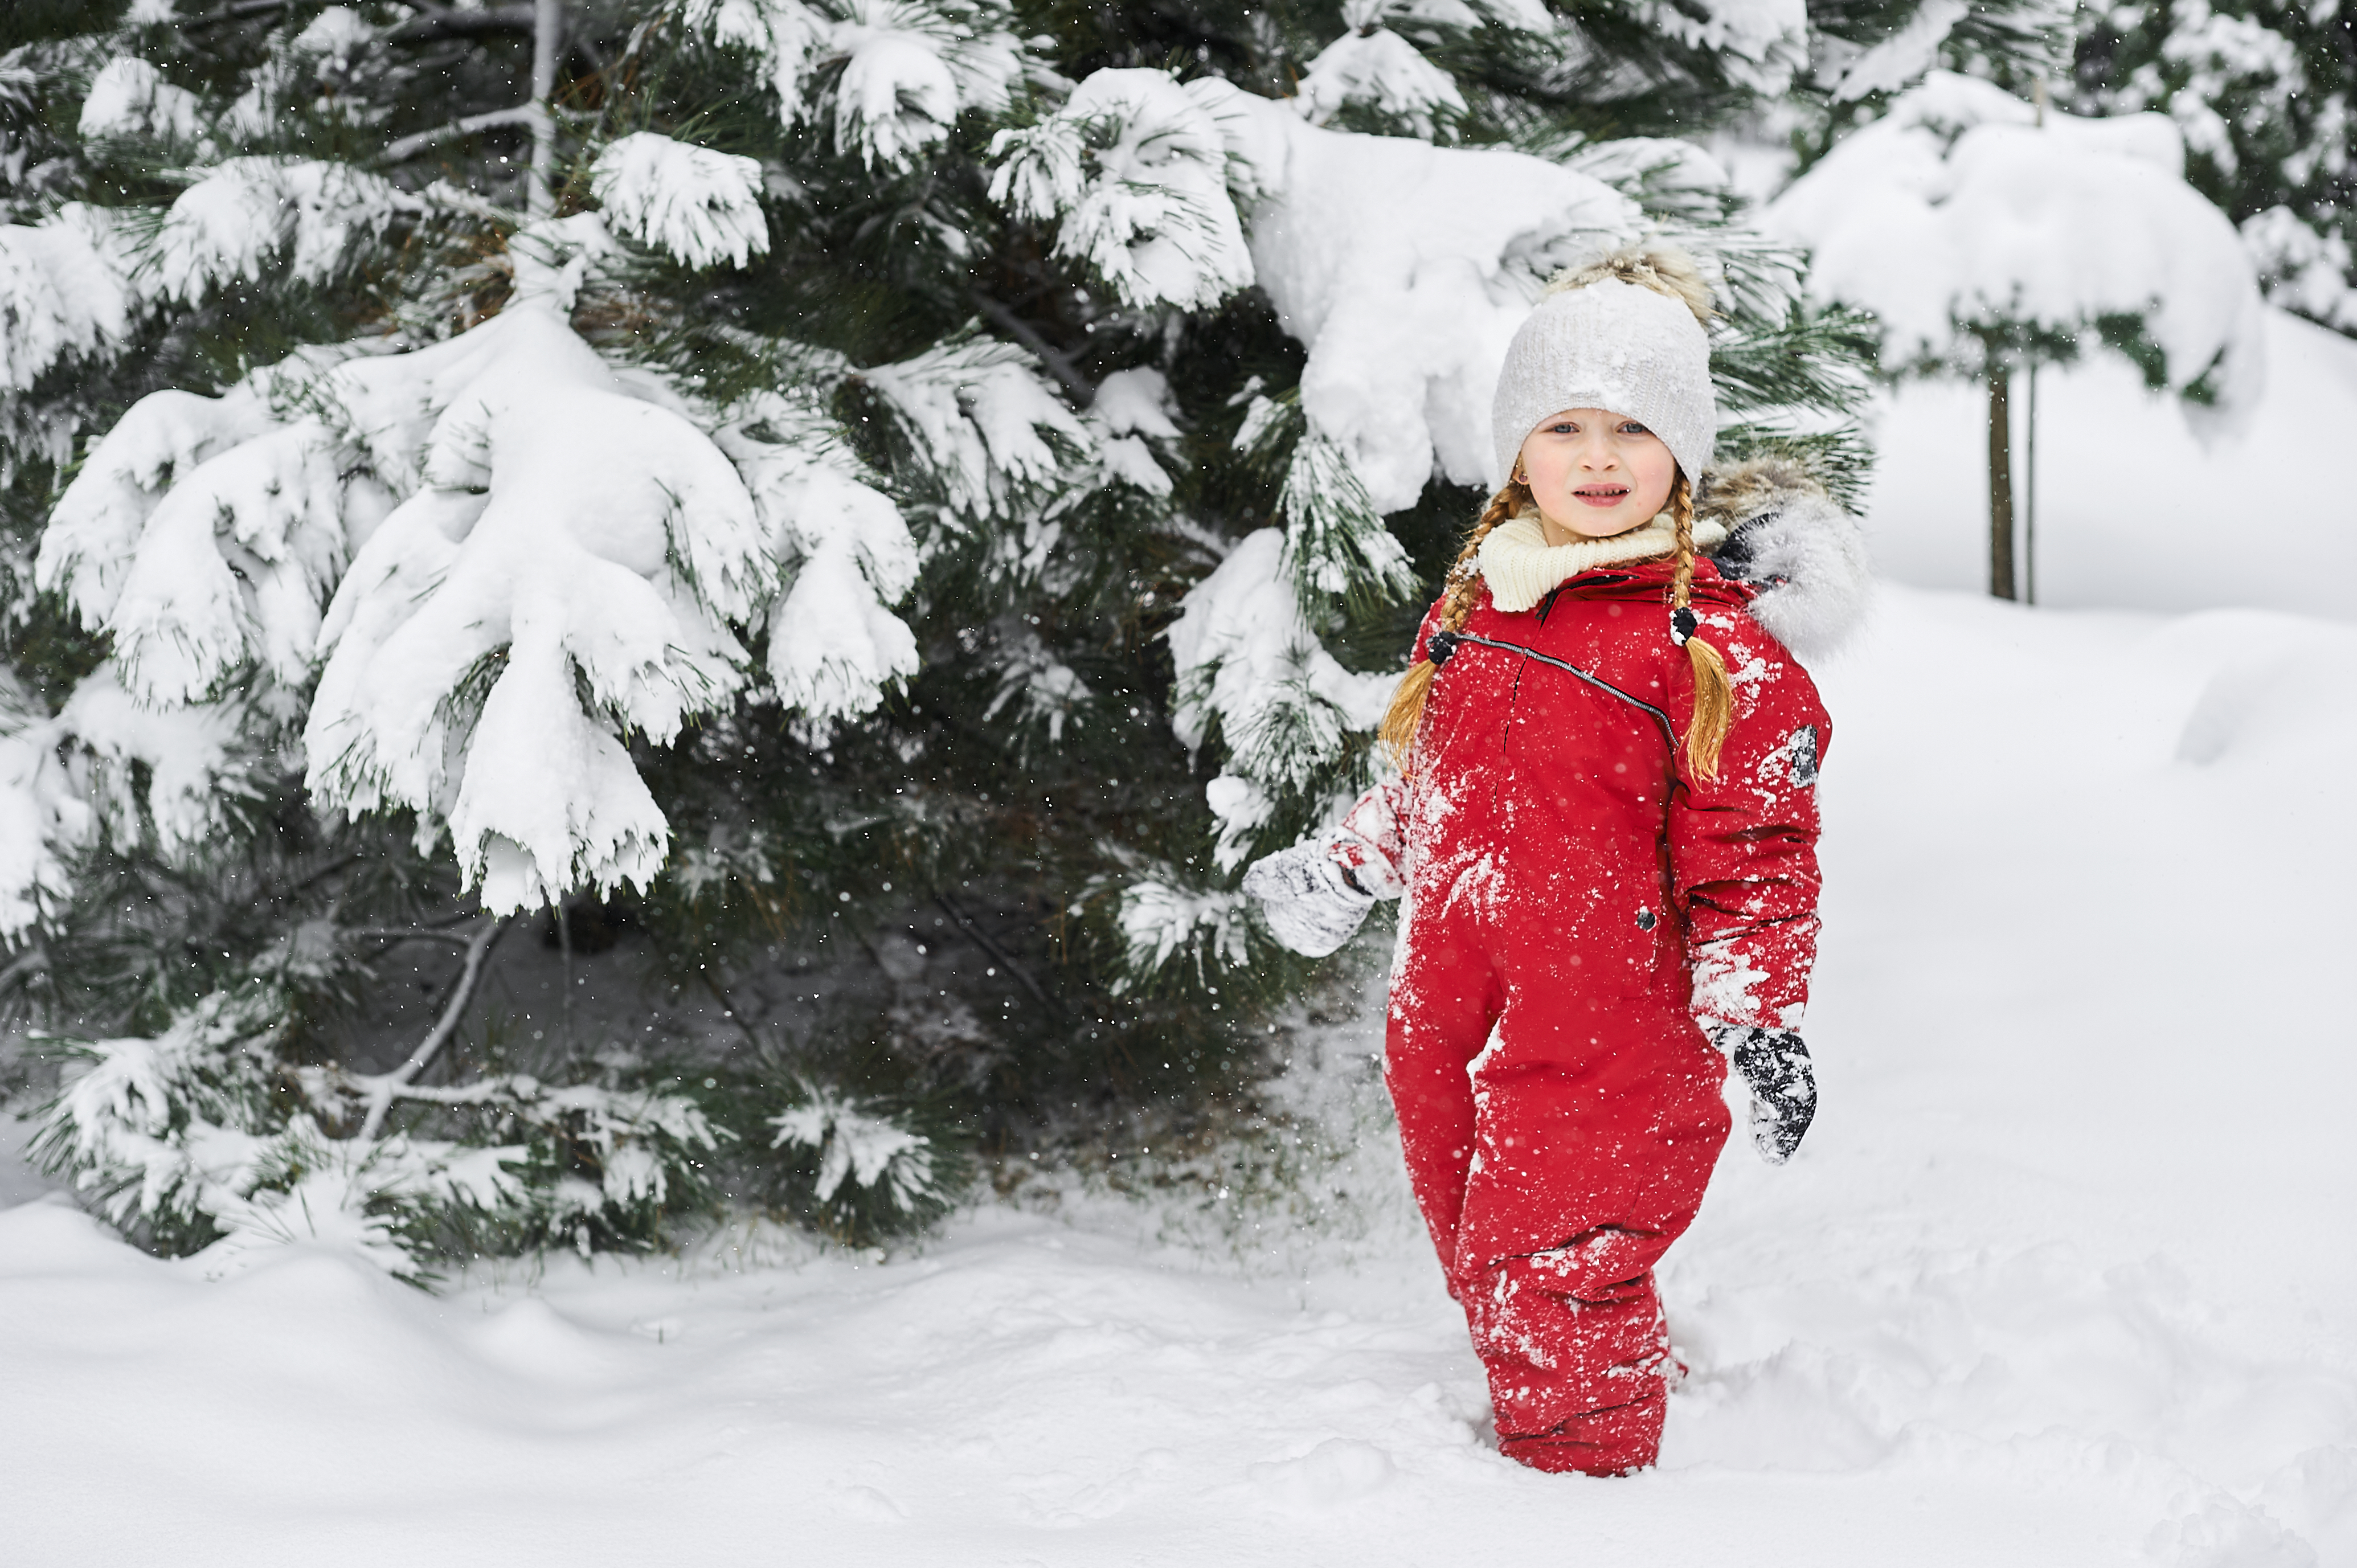 Kids Down Filled Snowsuits: Keep them Warm!